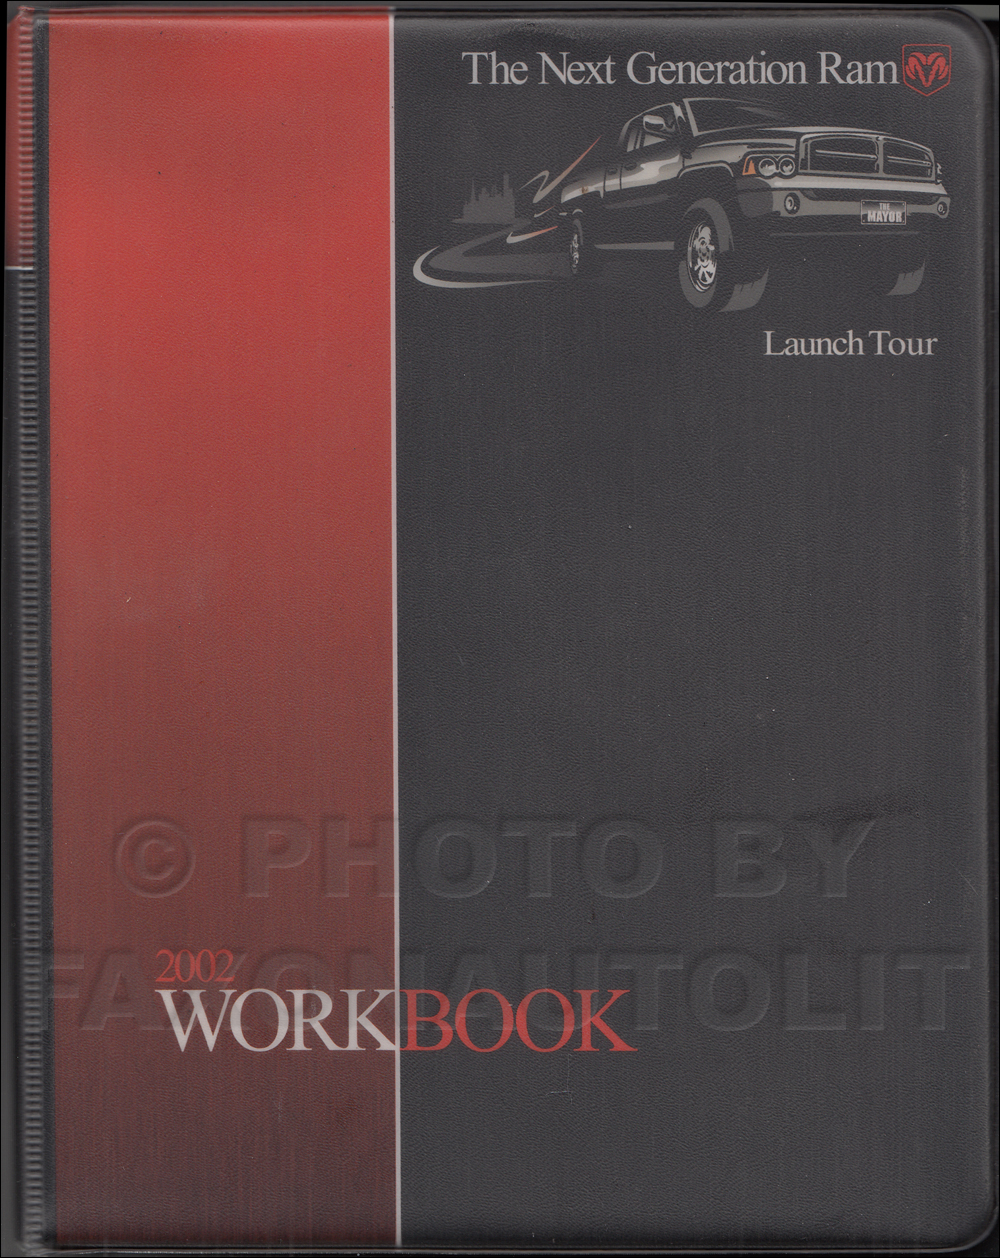 2002 Dodge Dealer Launch Tour Workbook Original with emphasis on Ram 1500